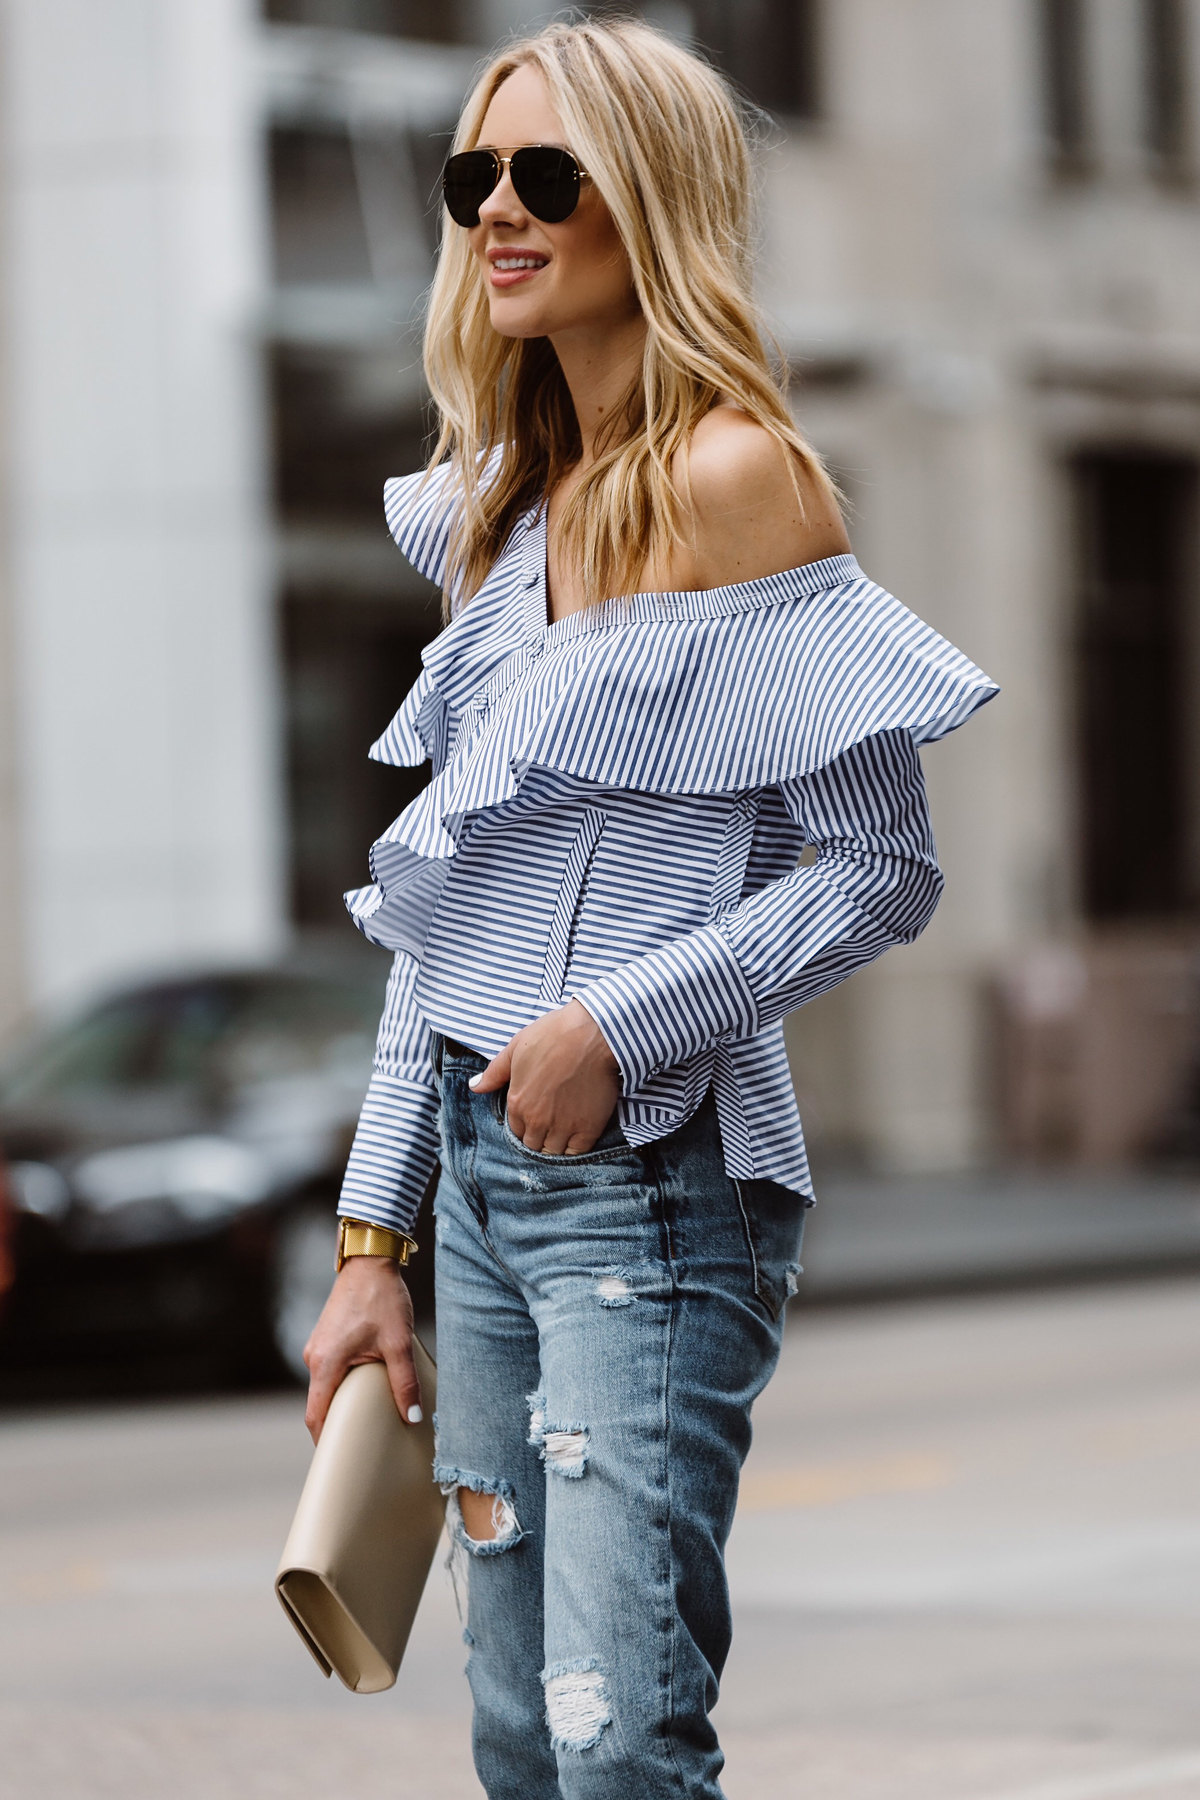 Fashion Jackson, Dallas Blogger, Fashion Blogger, Street Style, Self-Portrait Asymmetrical Ruffle Top, Blue White Stripe Top, Blanknyc Ms Throwback Relaxed Denim Ripped Jeans, Saint Laurent Monogram Clutch, Celine Aviator Sunglasses